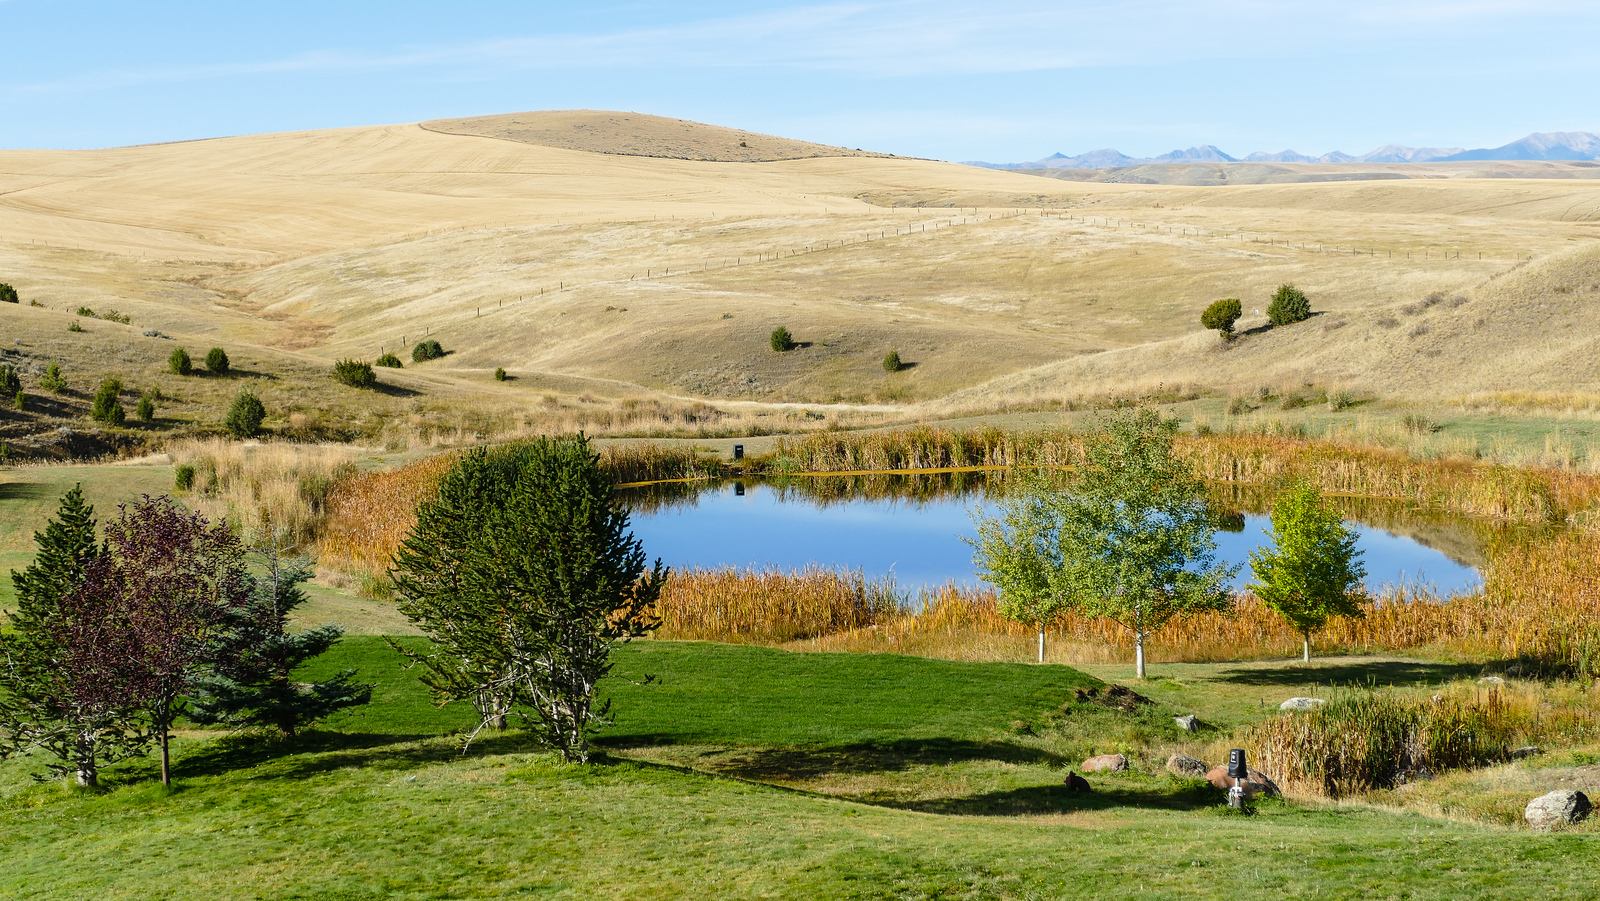 The fishing pond at Grey Cliffs Ranch near Three Forks, Montana. Looking for a romantic getaway? This is it!